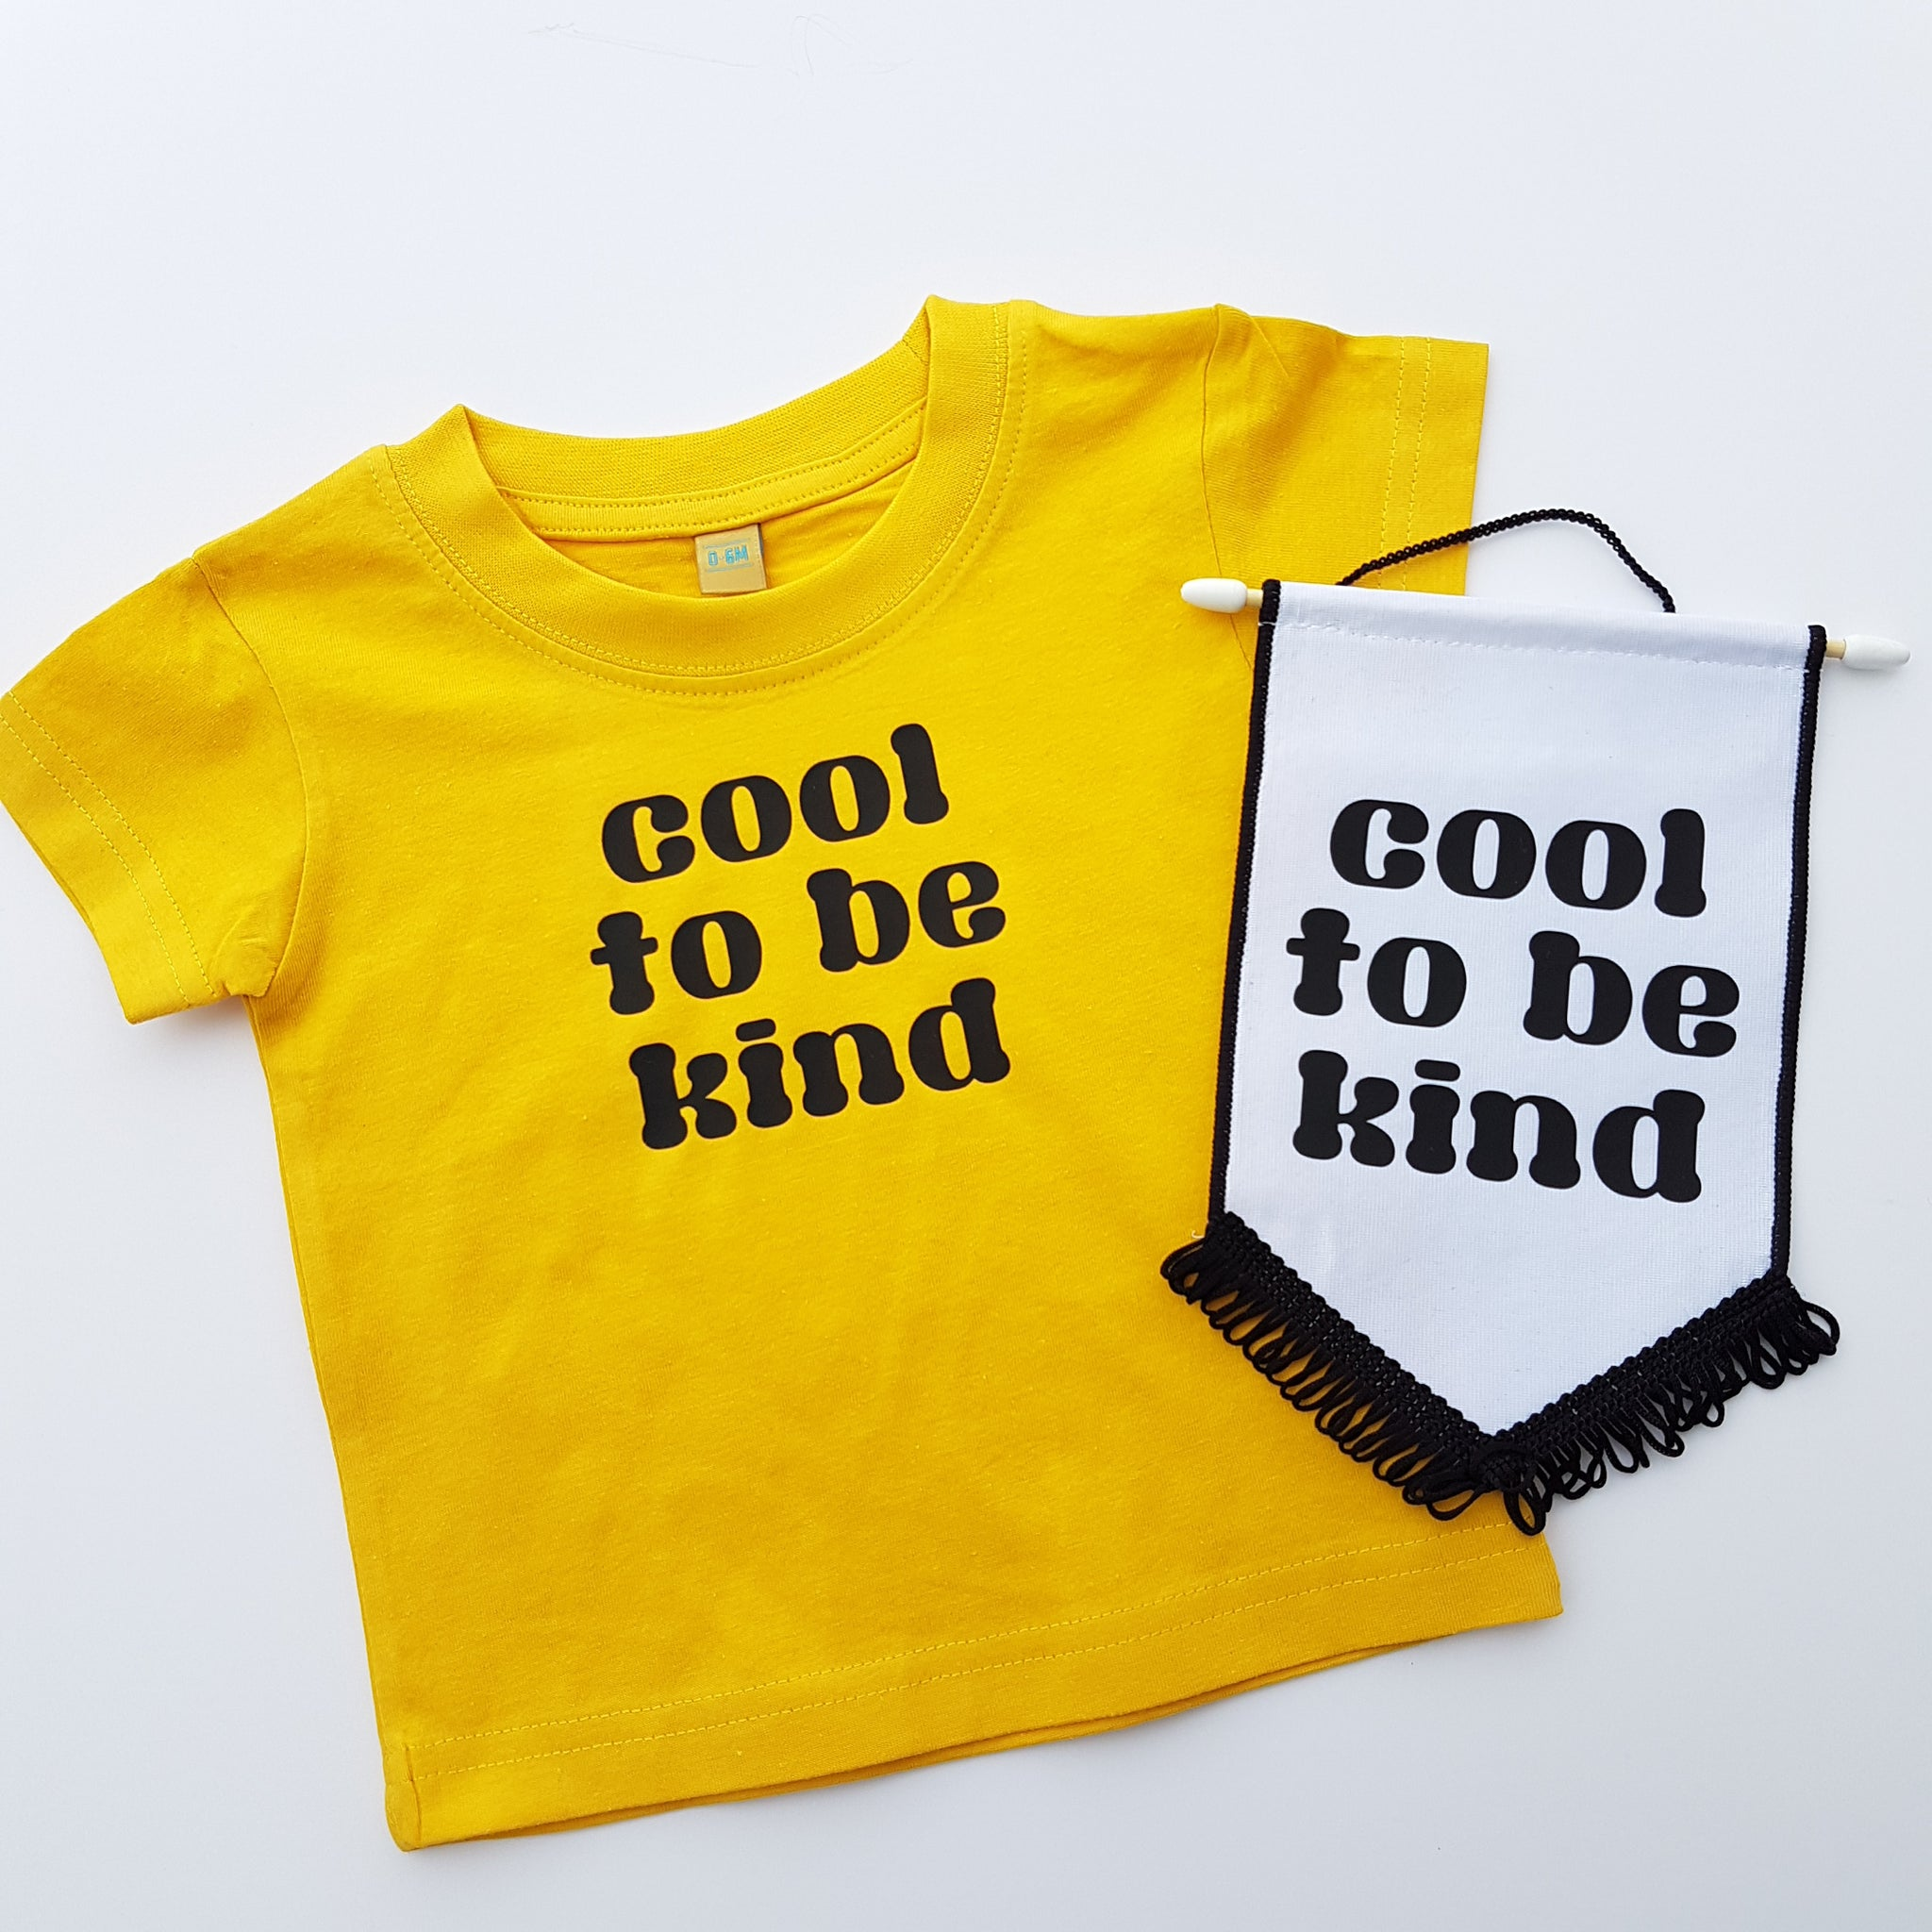 Cool To be Kind Banner - Hello Pickle!